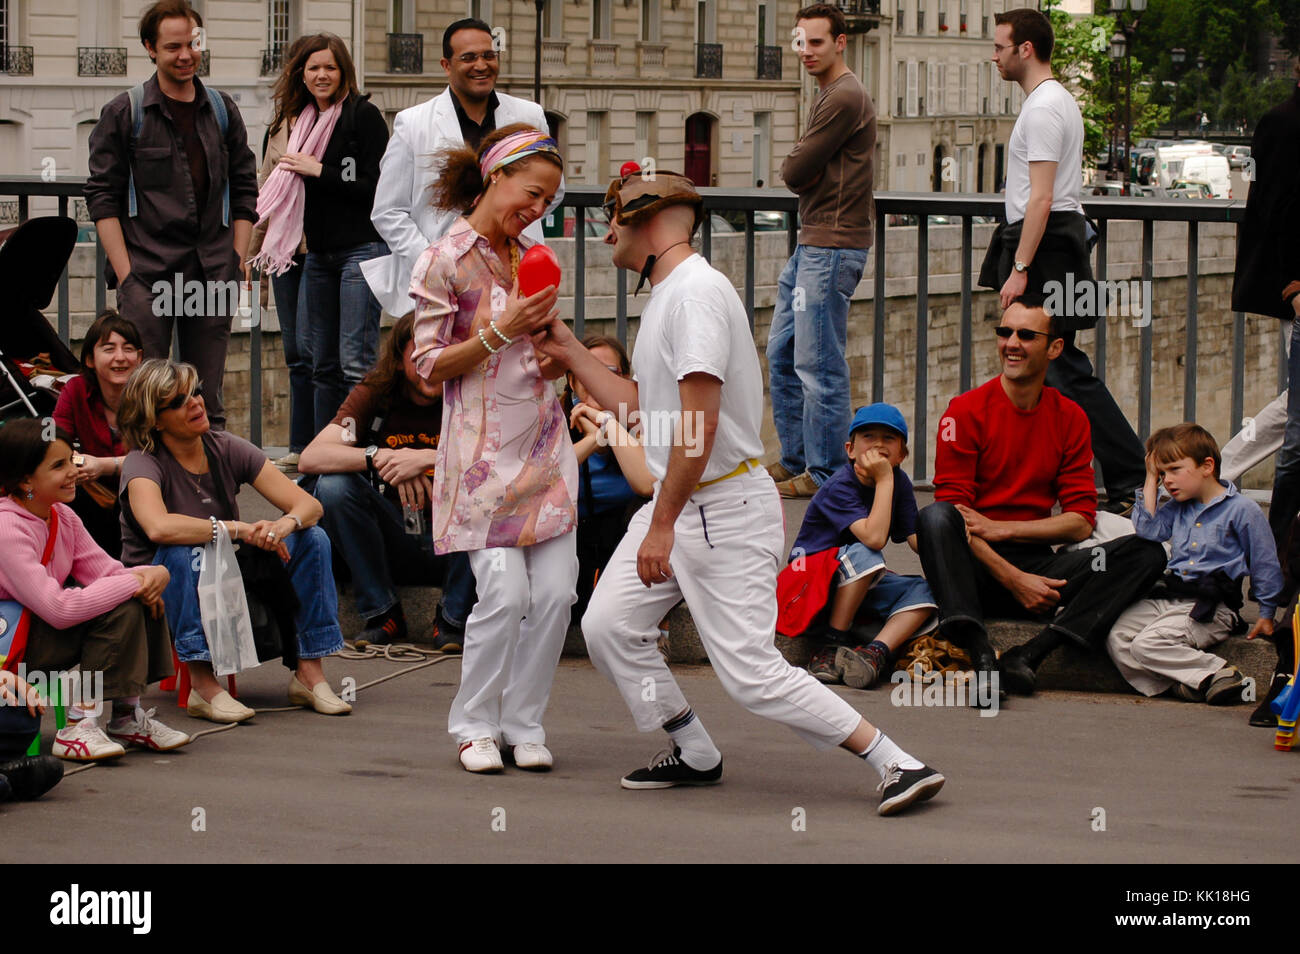 street-performer-entertain-tourists-on-t